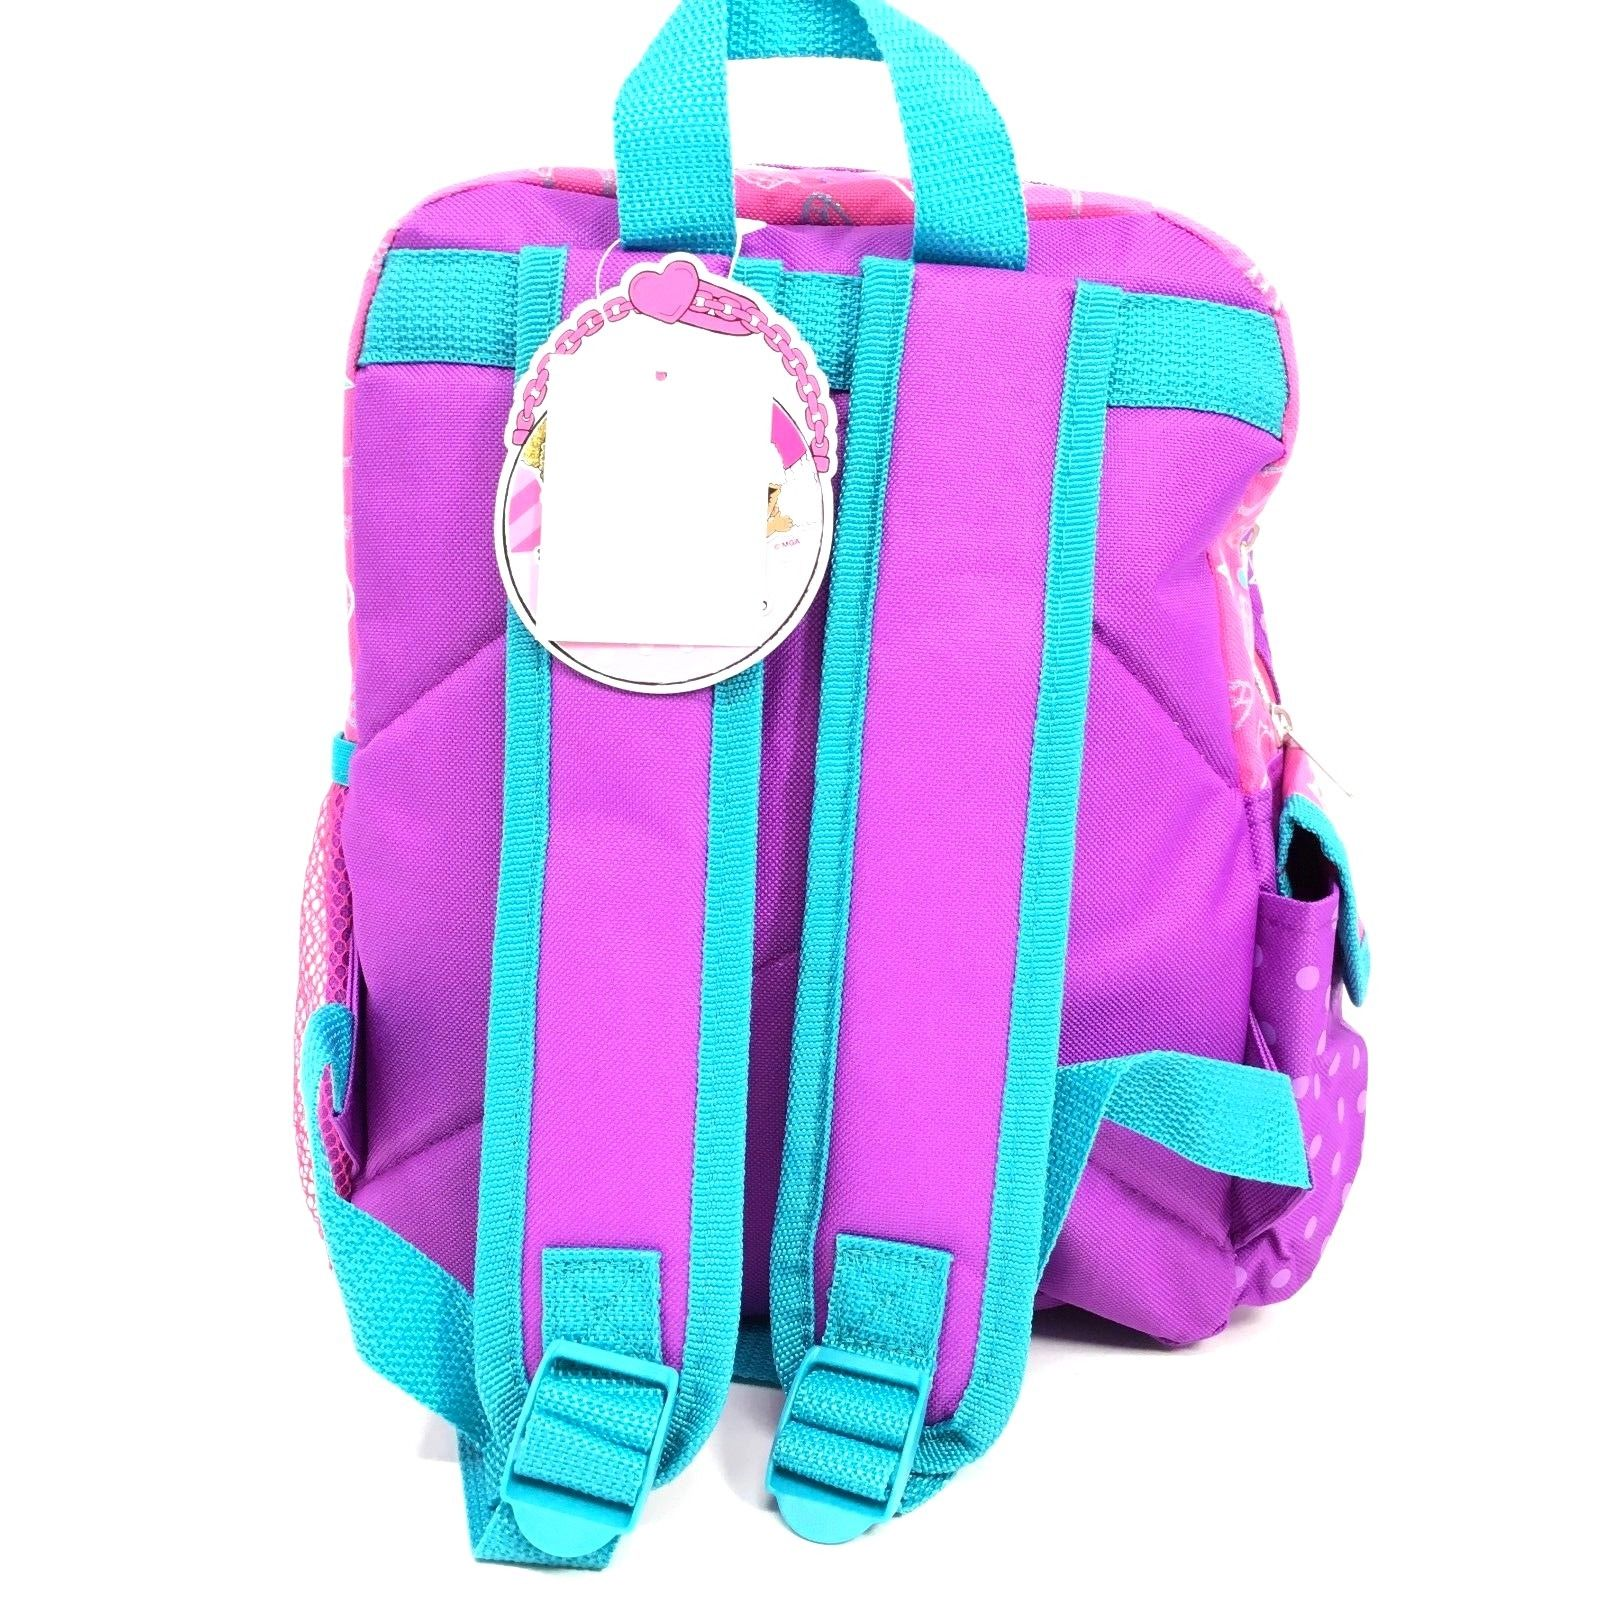 "L.O.L Surprise! Small Girs Backpack 12"" Pink - Ace Handbag"